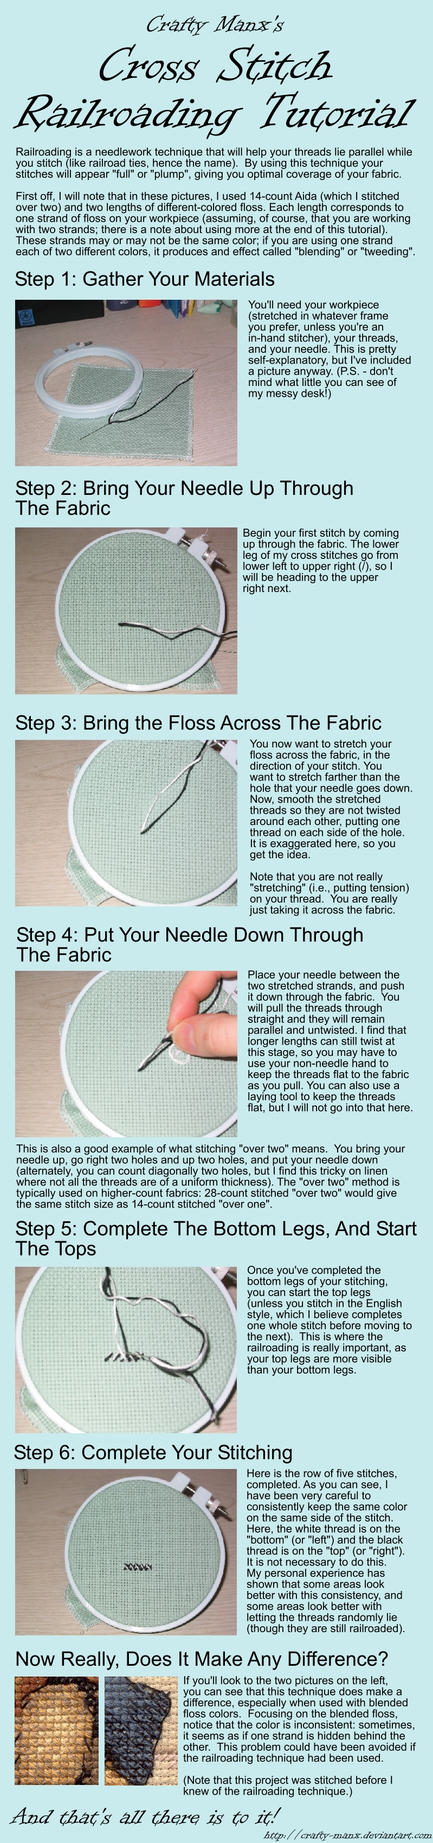 CrossStitchRailroadingTutorial by crafty-manx